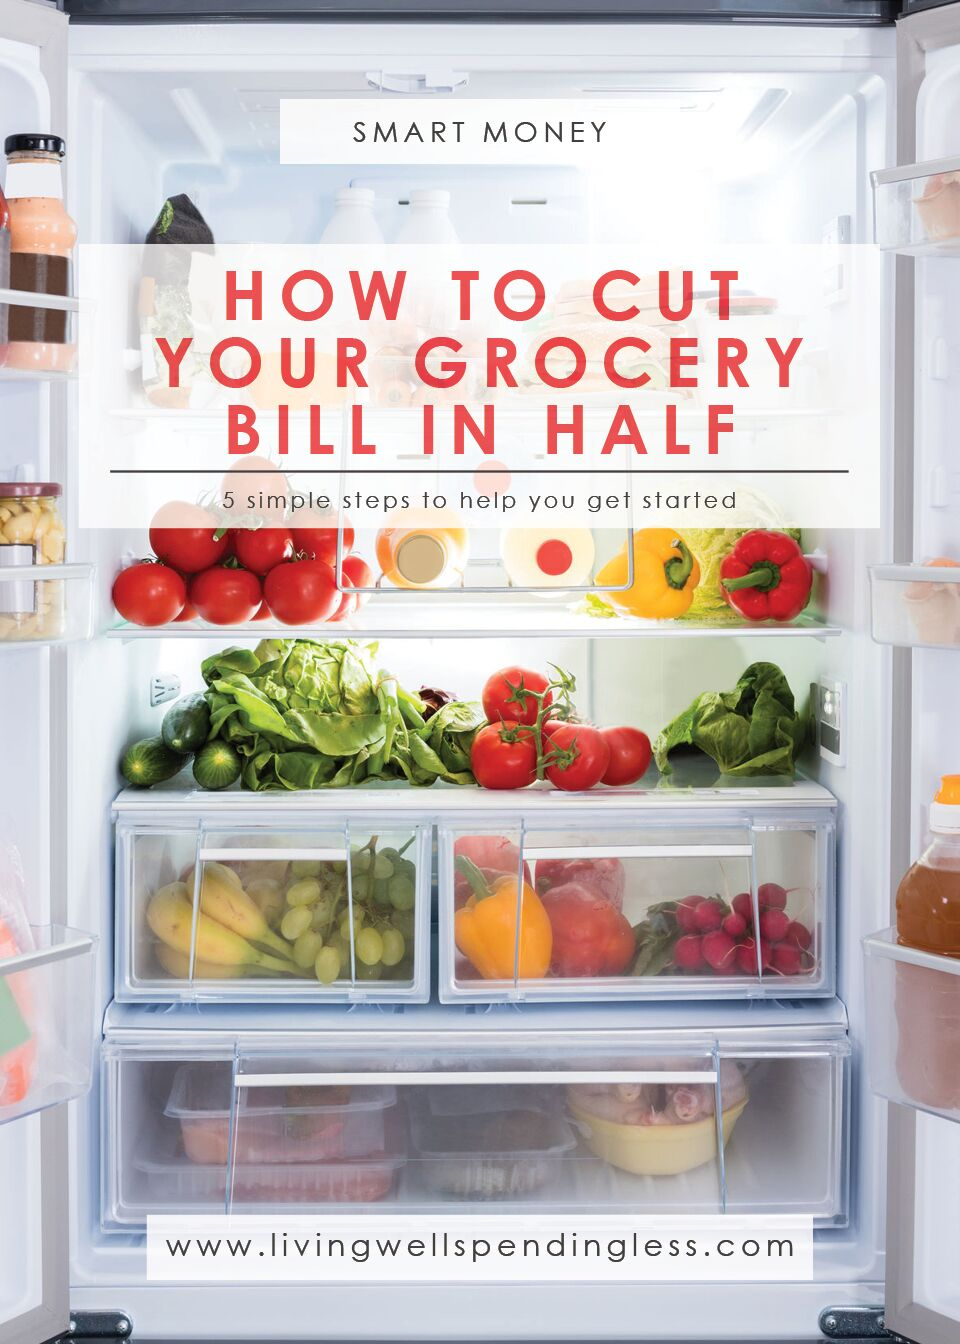 How to Cut Your Grocery Bill in Half: 8 Simple Steps to Help You Get Started